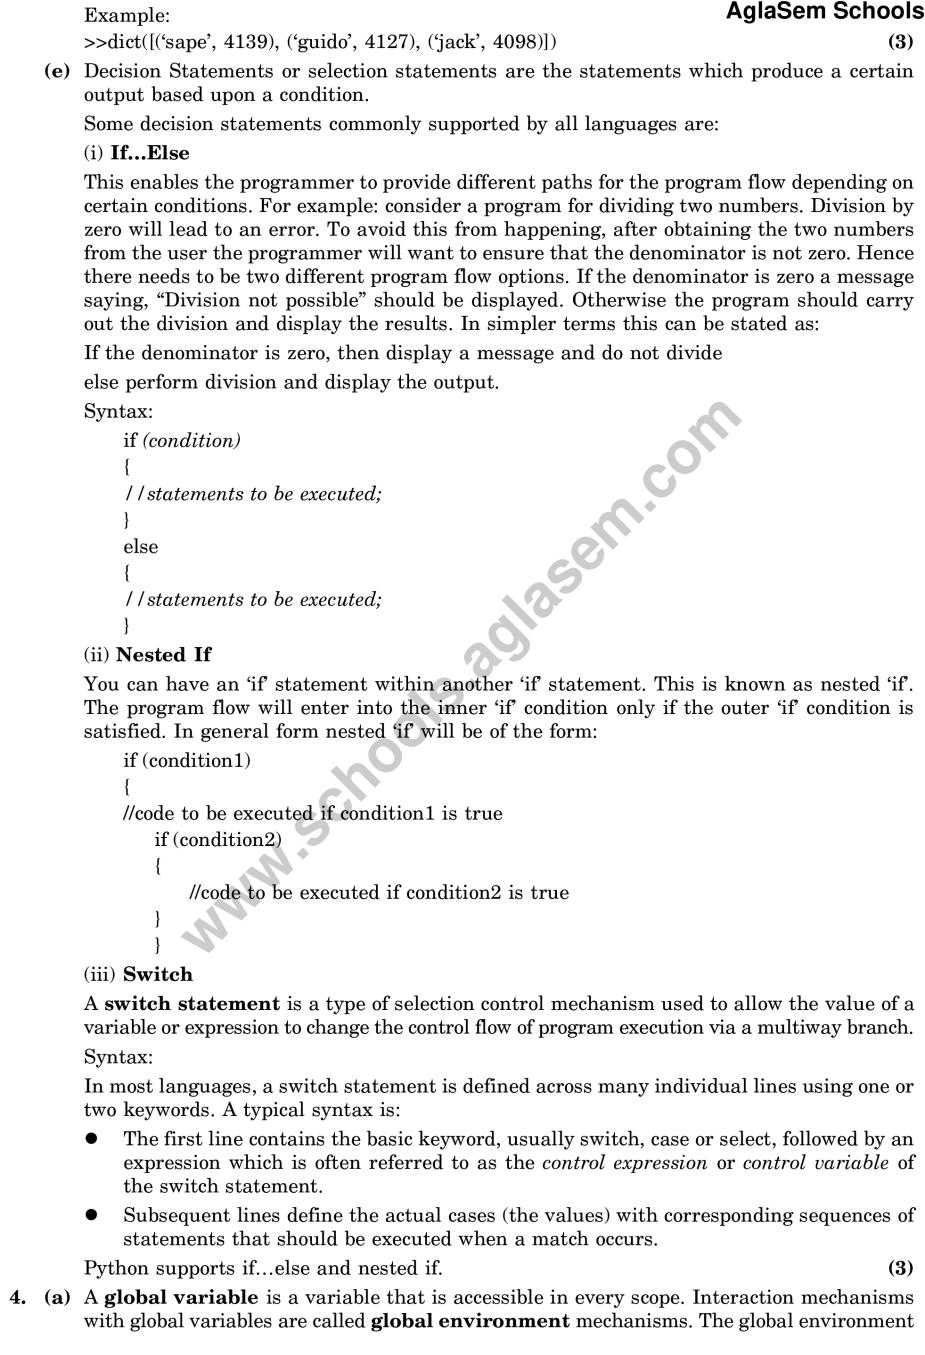 CBSE Sample Paper for Class 11 Computer Science (Solved) – Set B